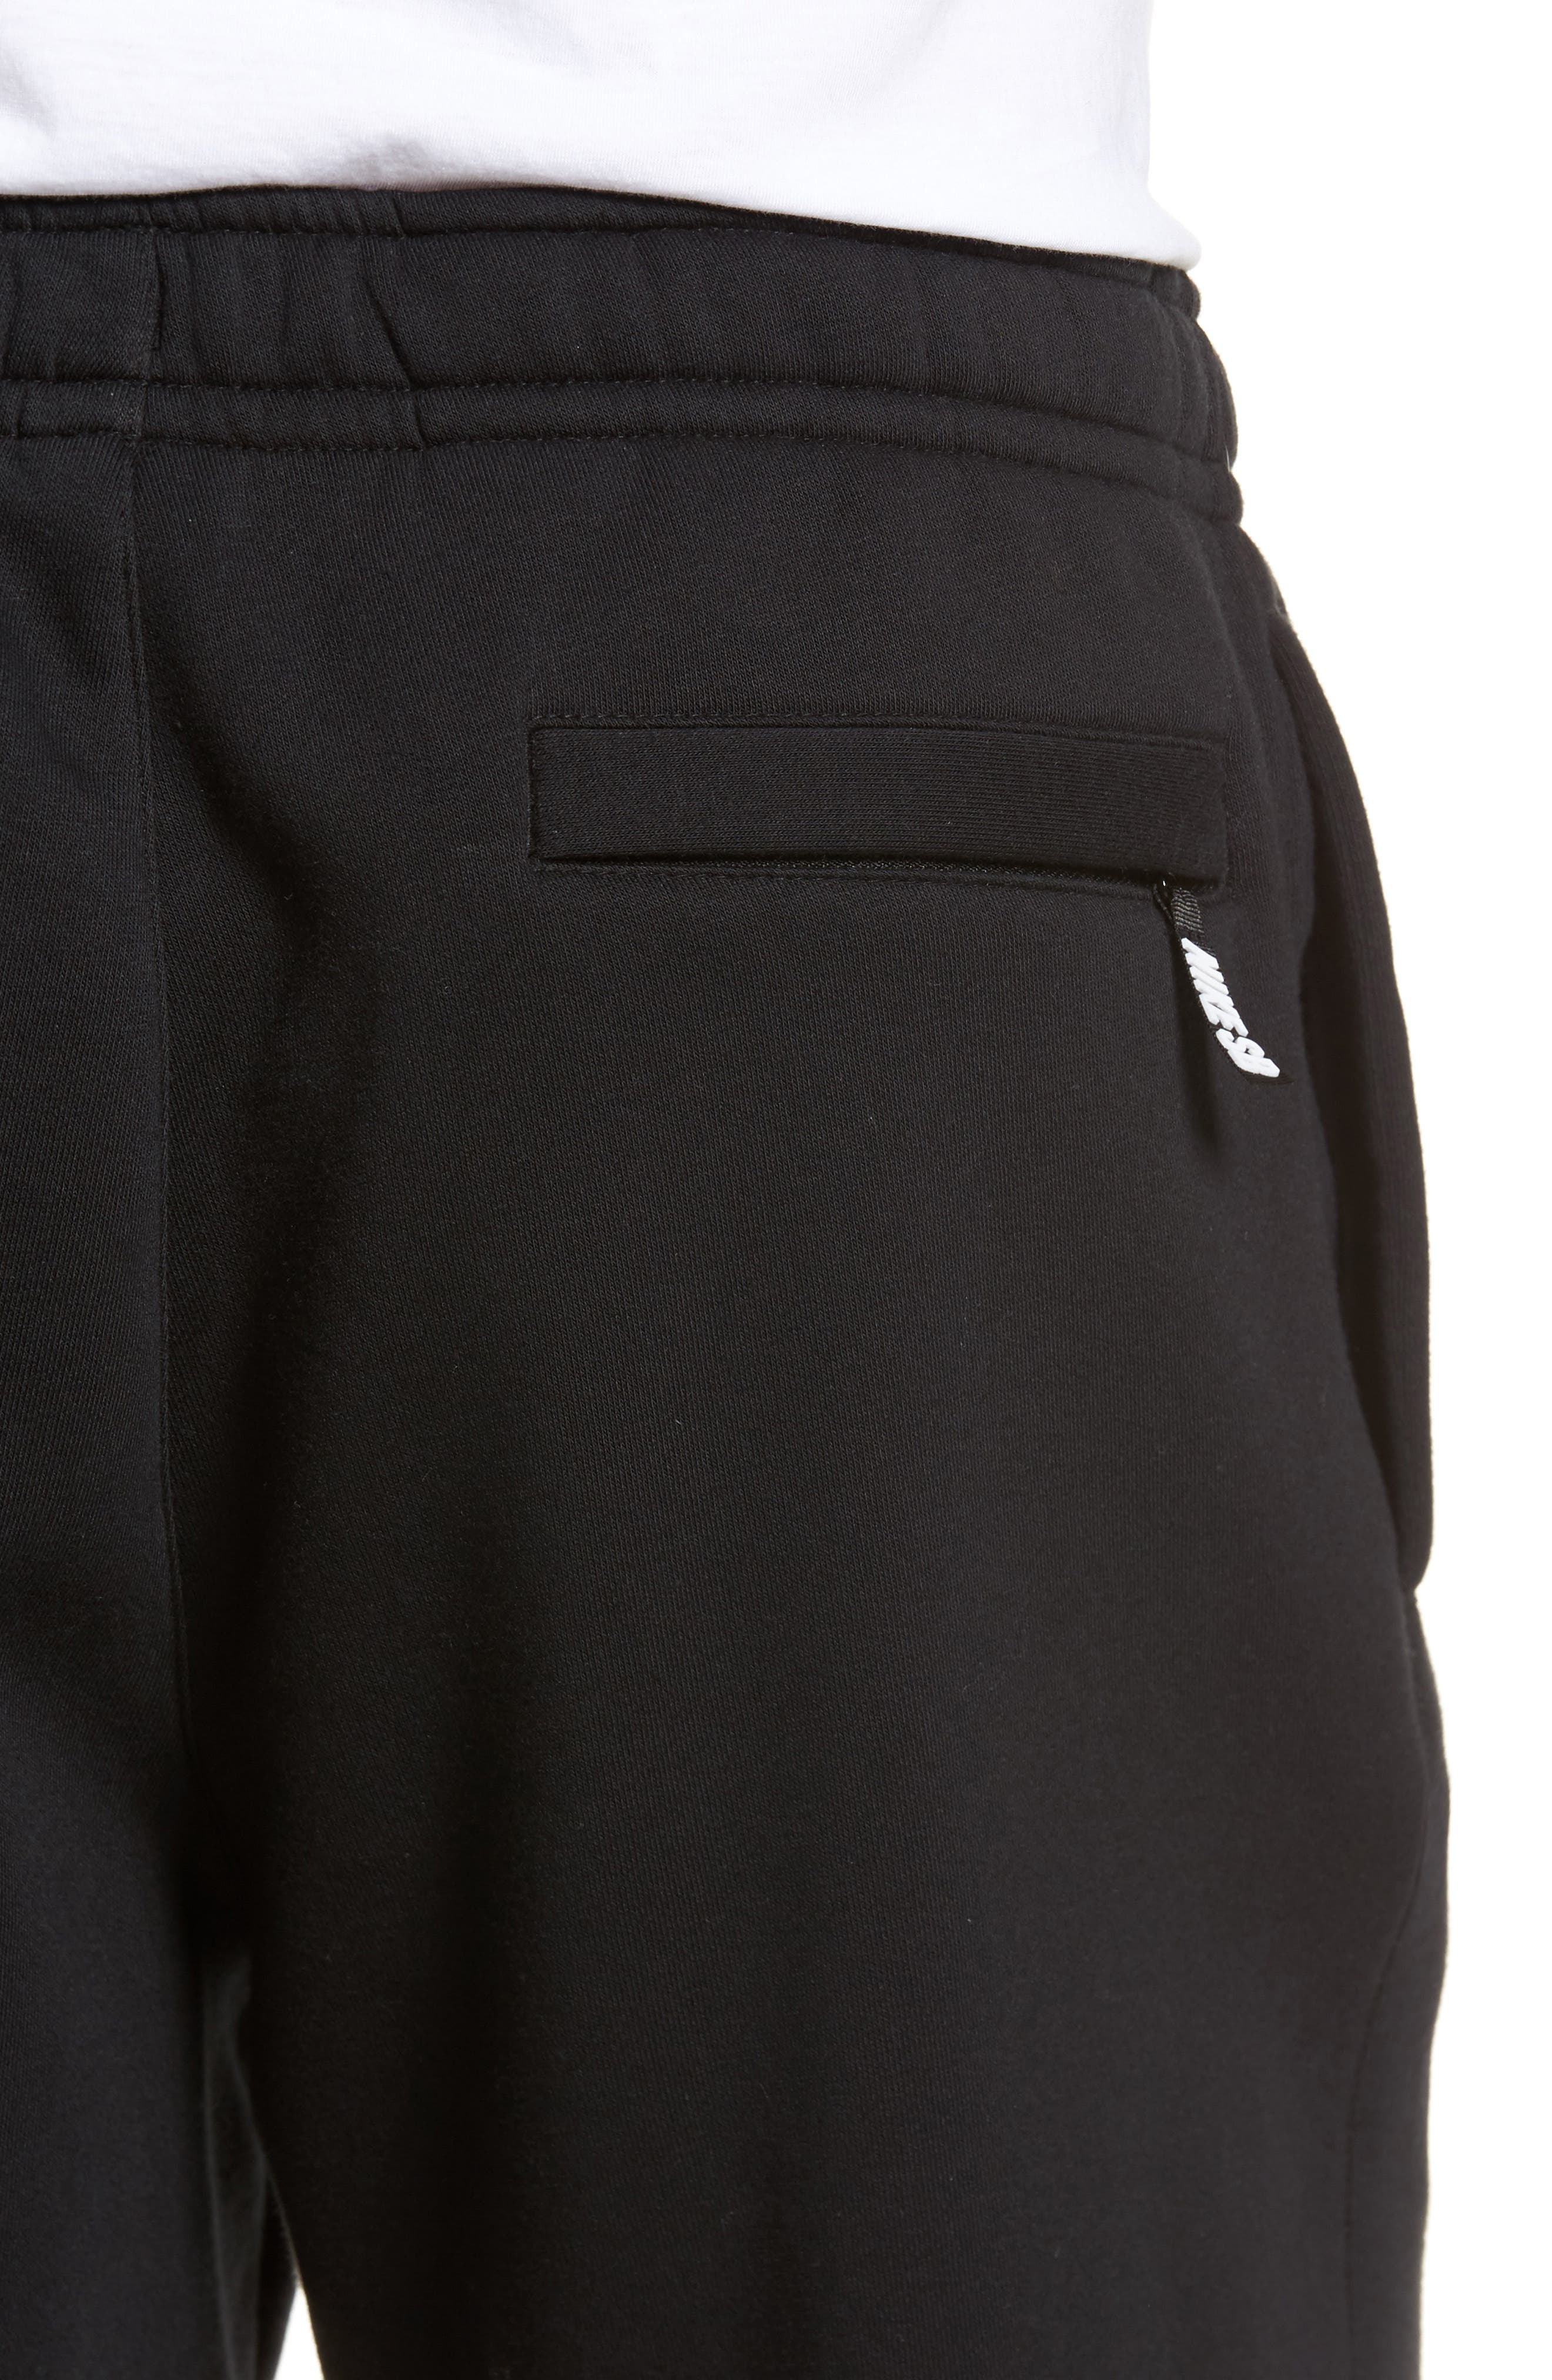 Fleece Shorts,                             Alternate thumbnail 4, color,                             Black/ White